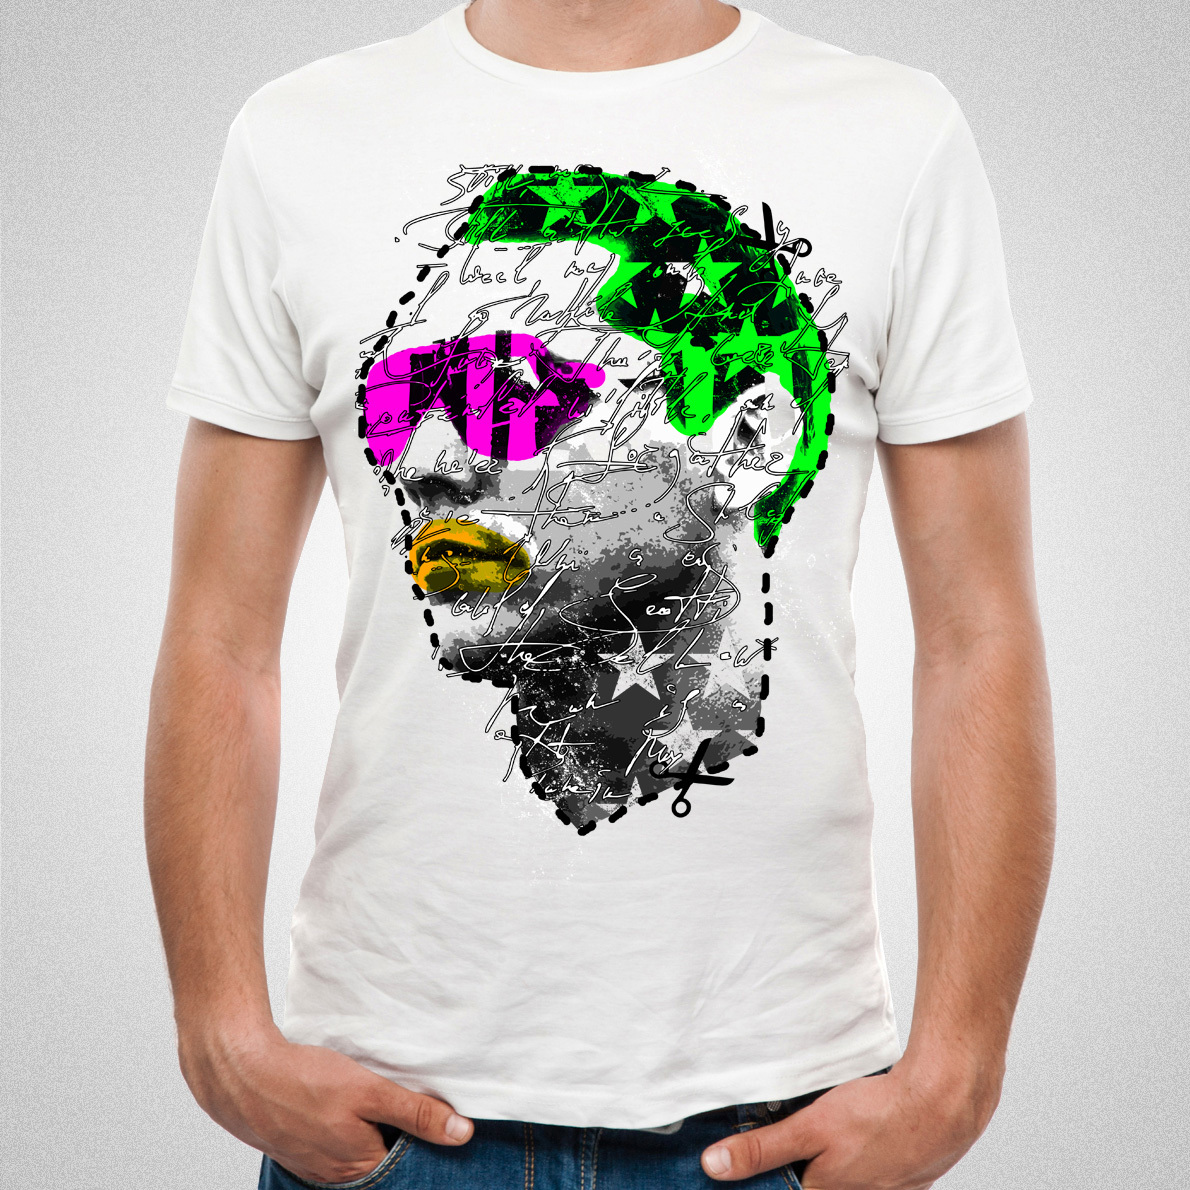 Tiesto - Neon Colors White T-Shirt